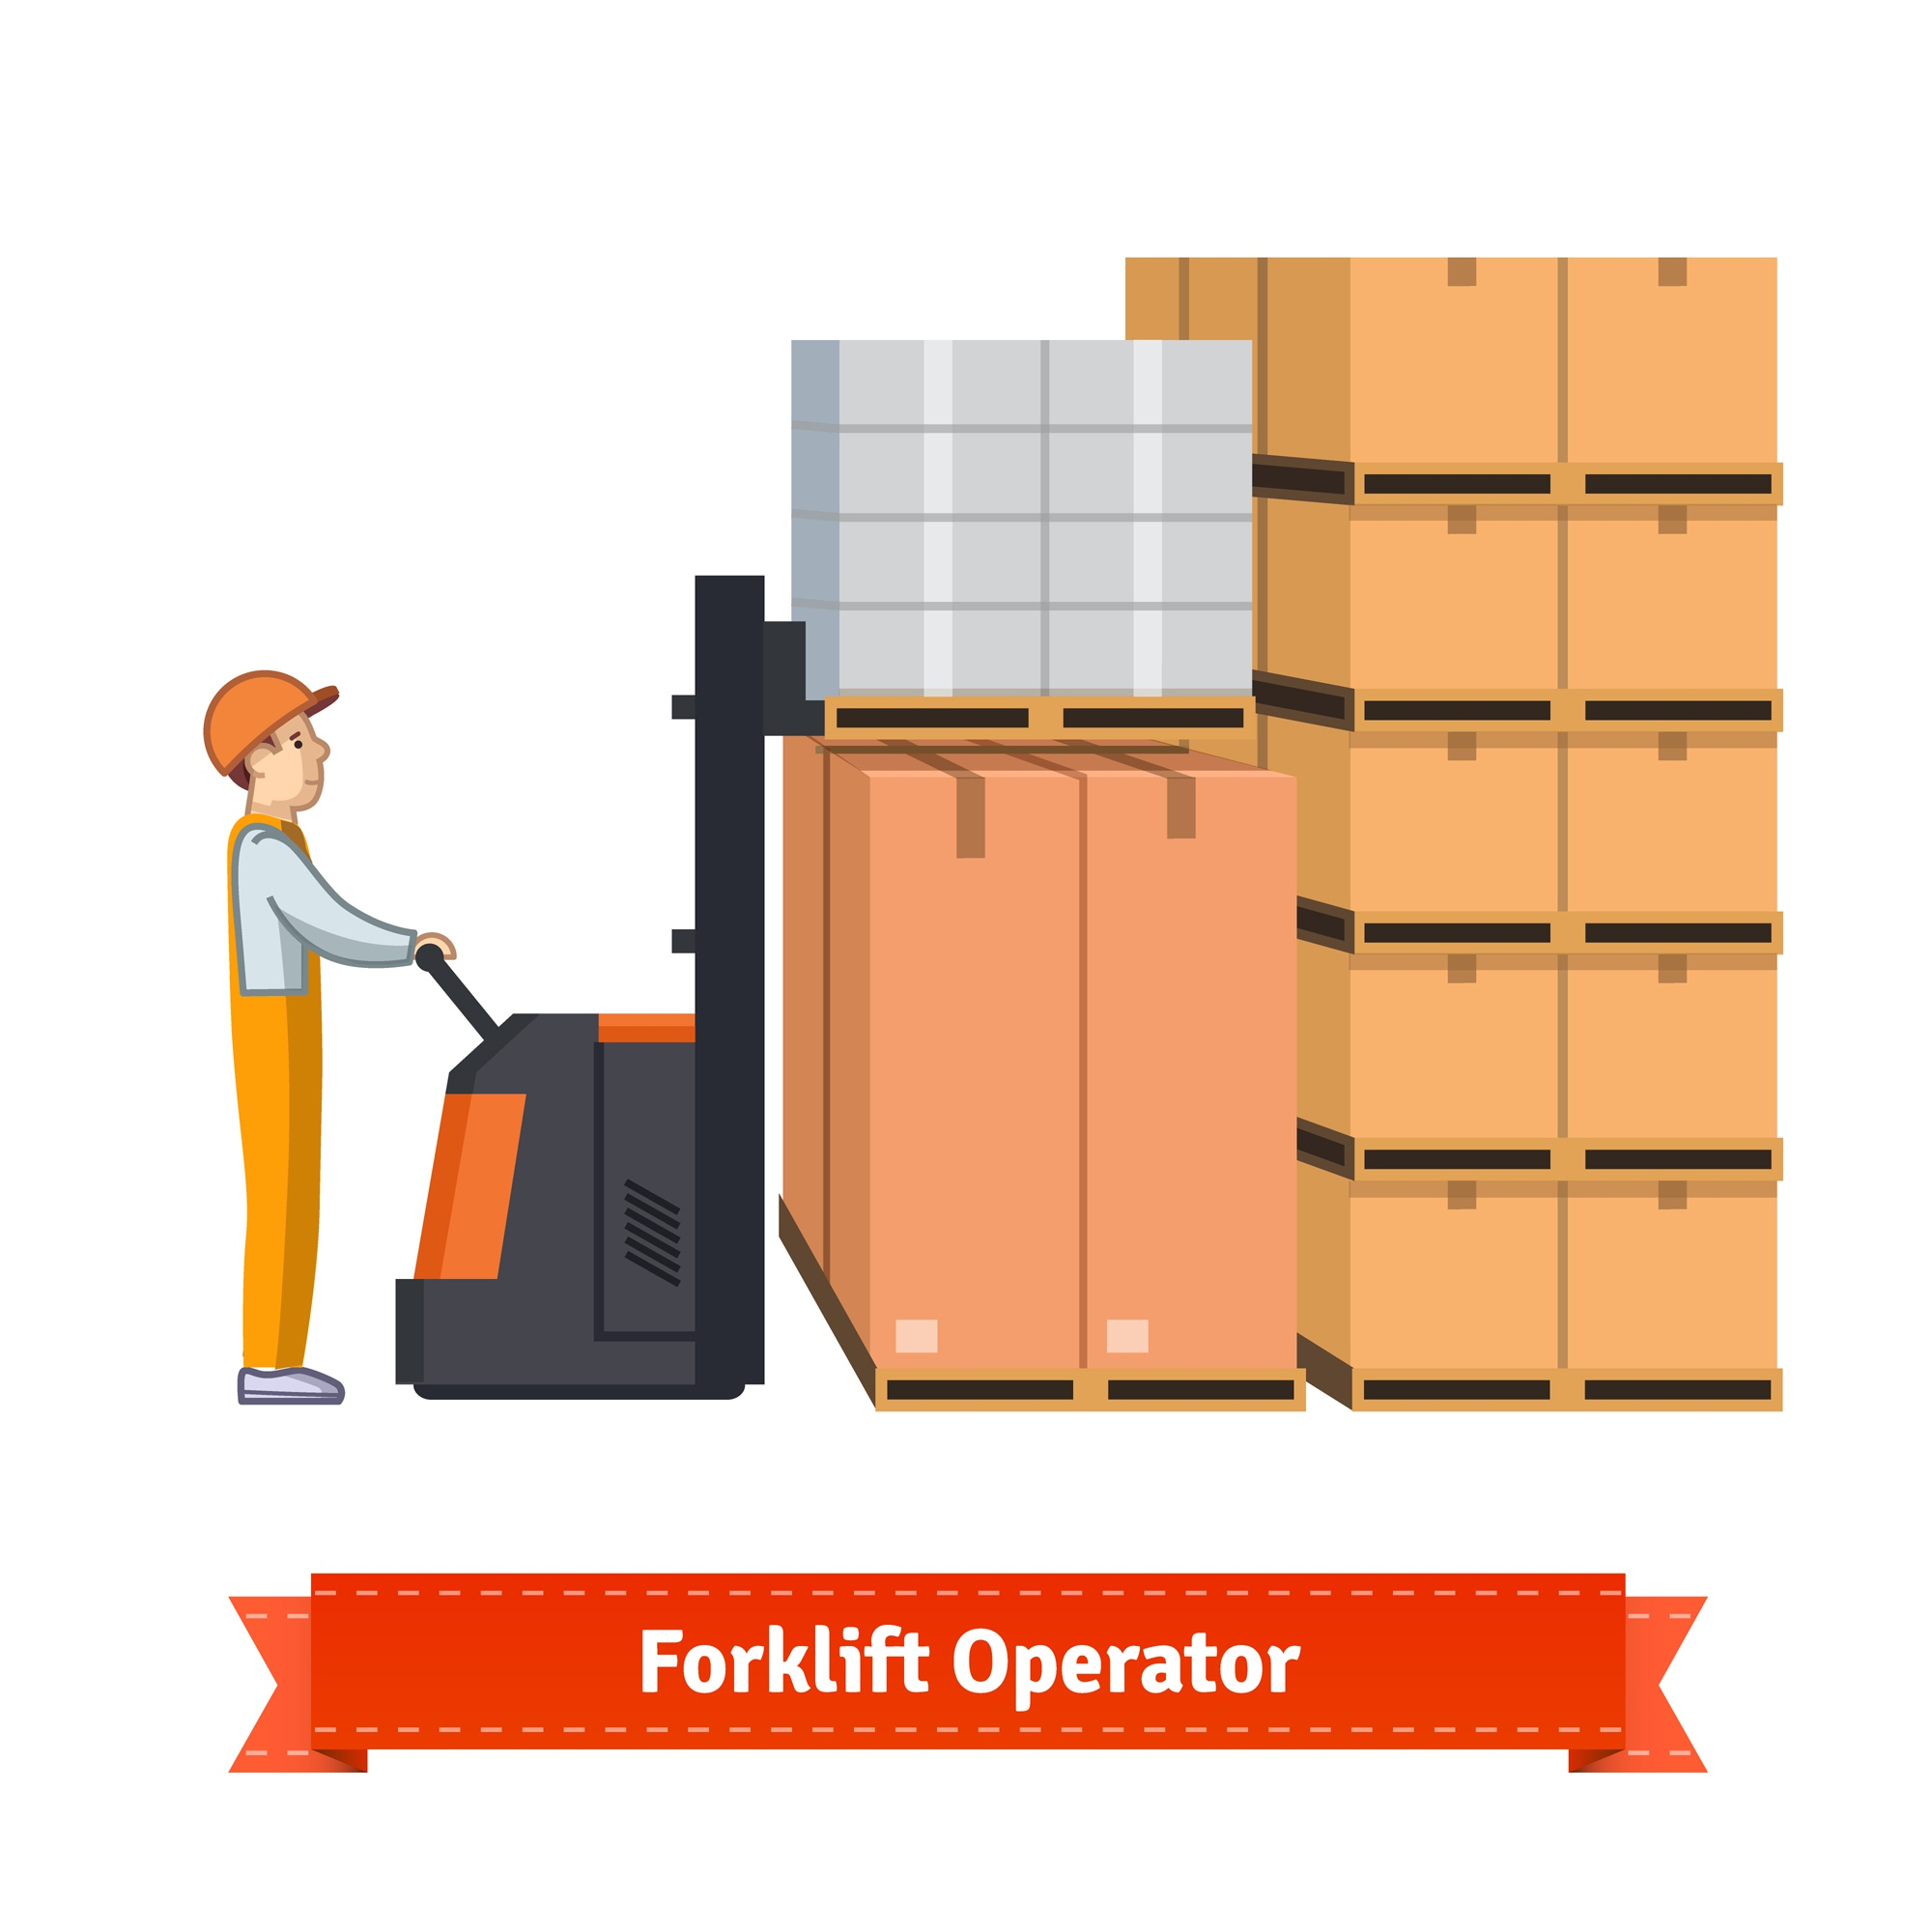 Forklift operator loading boxes